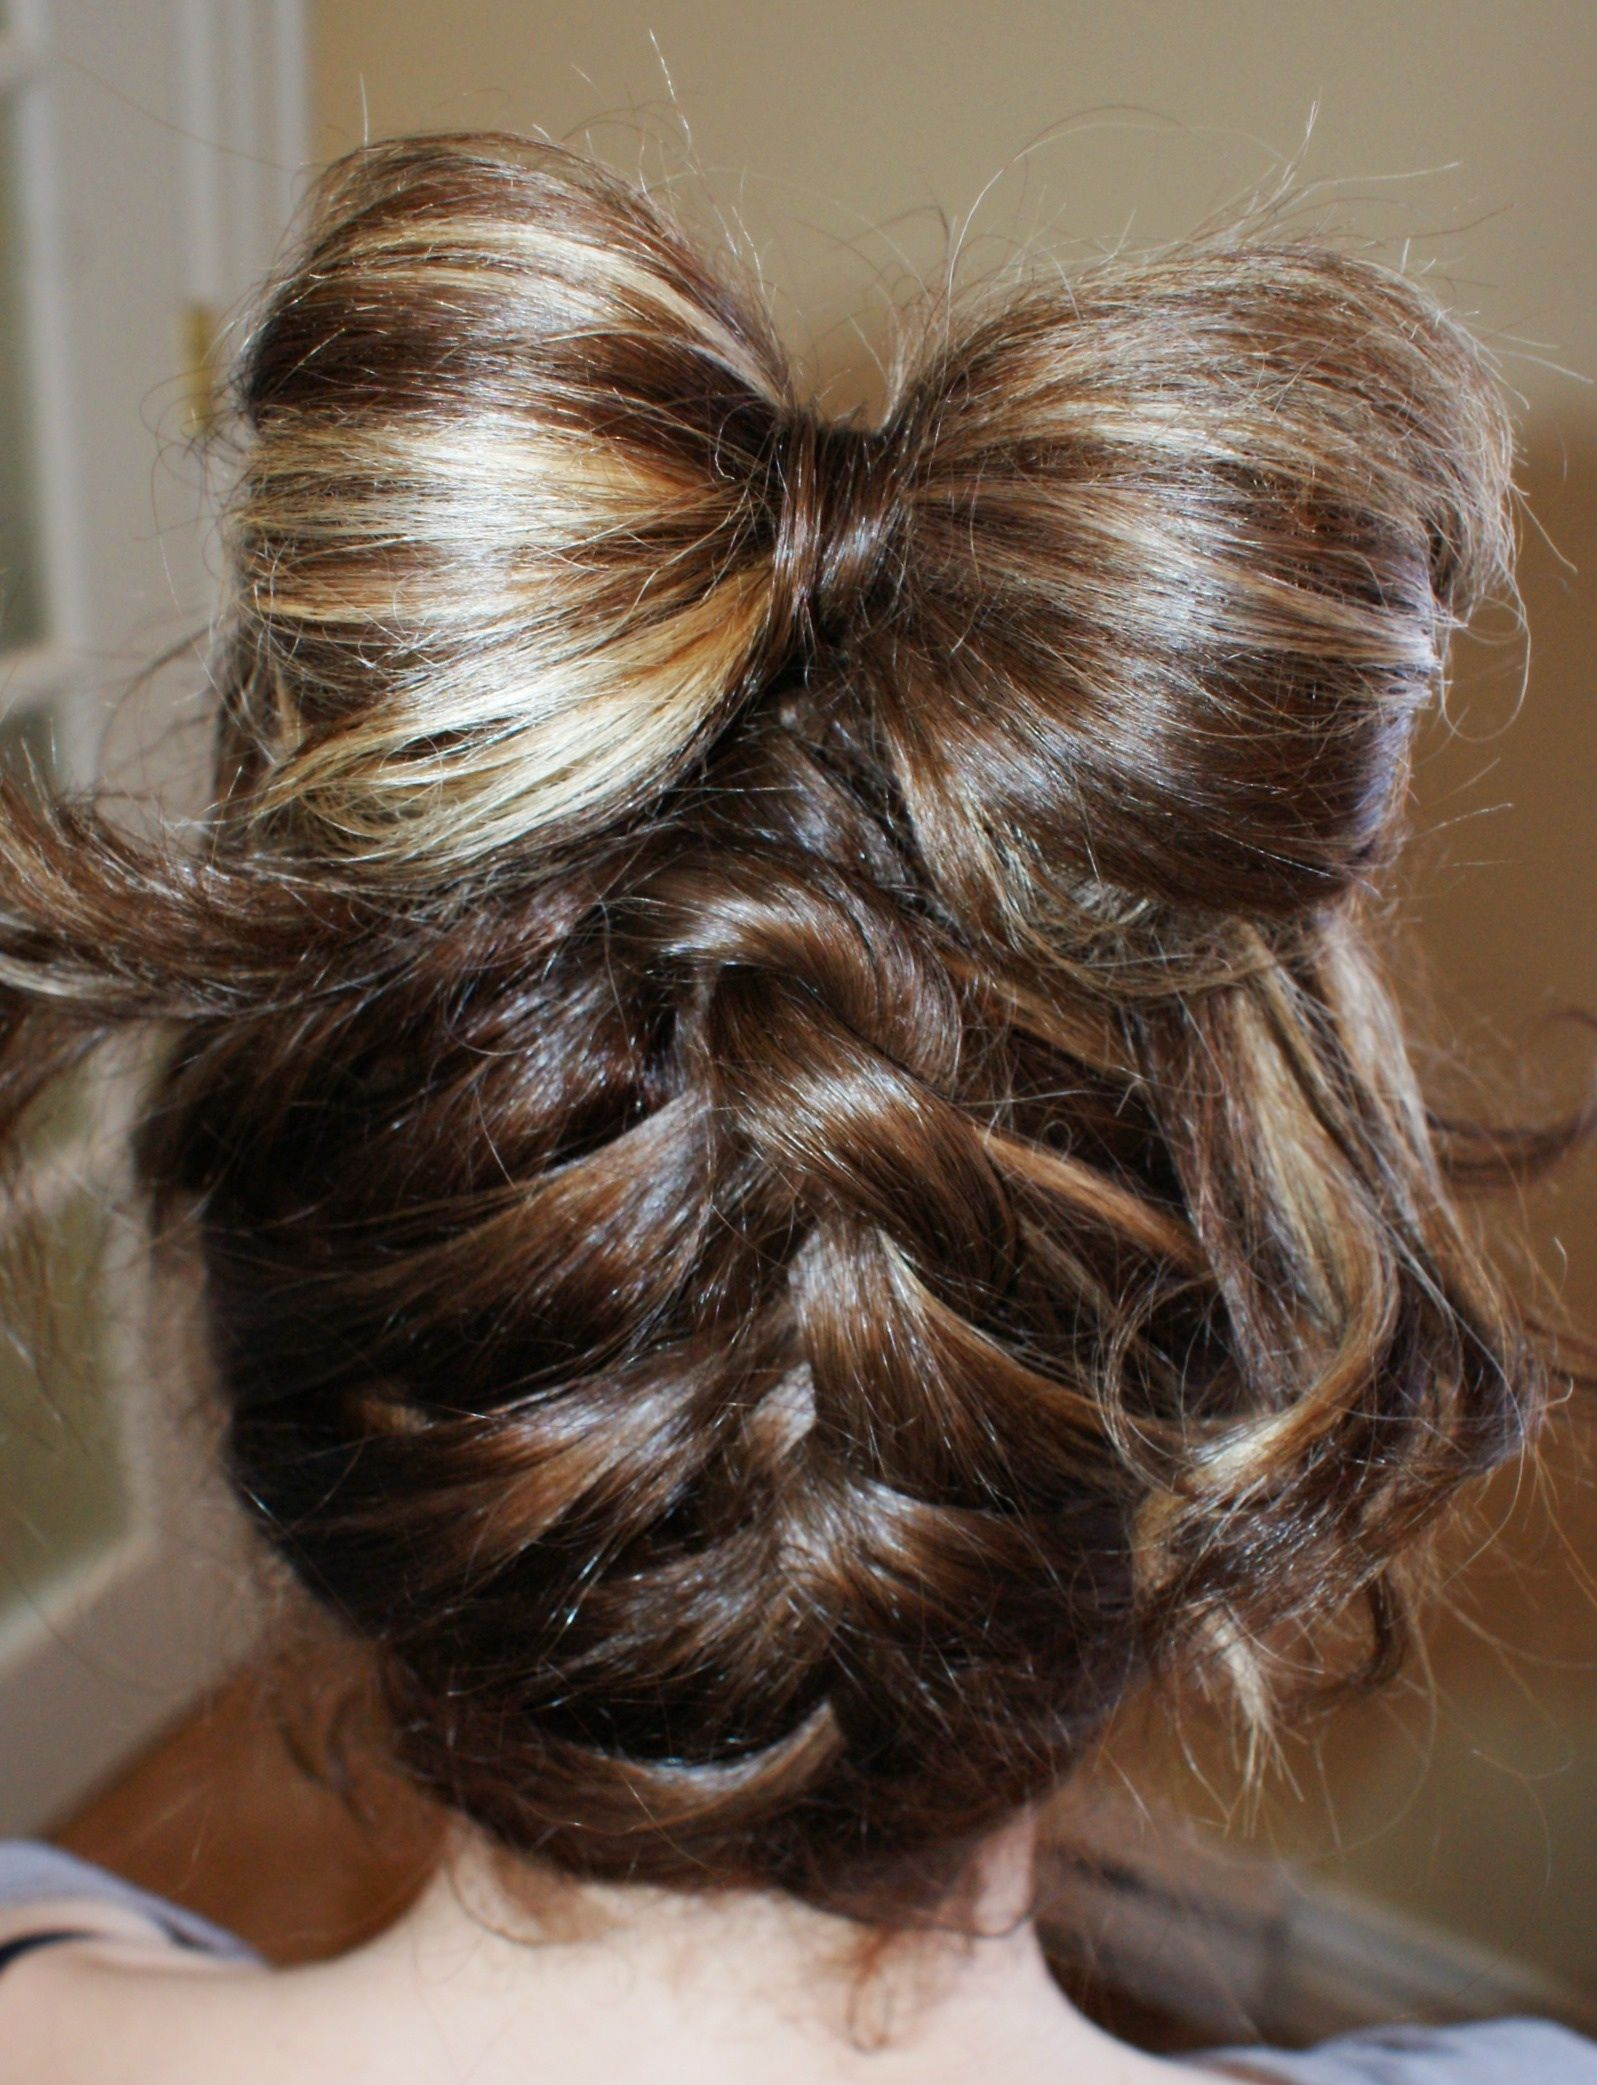 Cute hairbow hair braid i like this braid but i dint how to do it